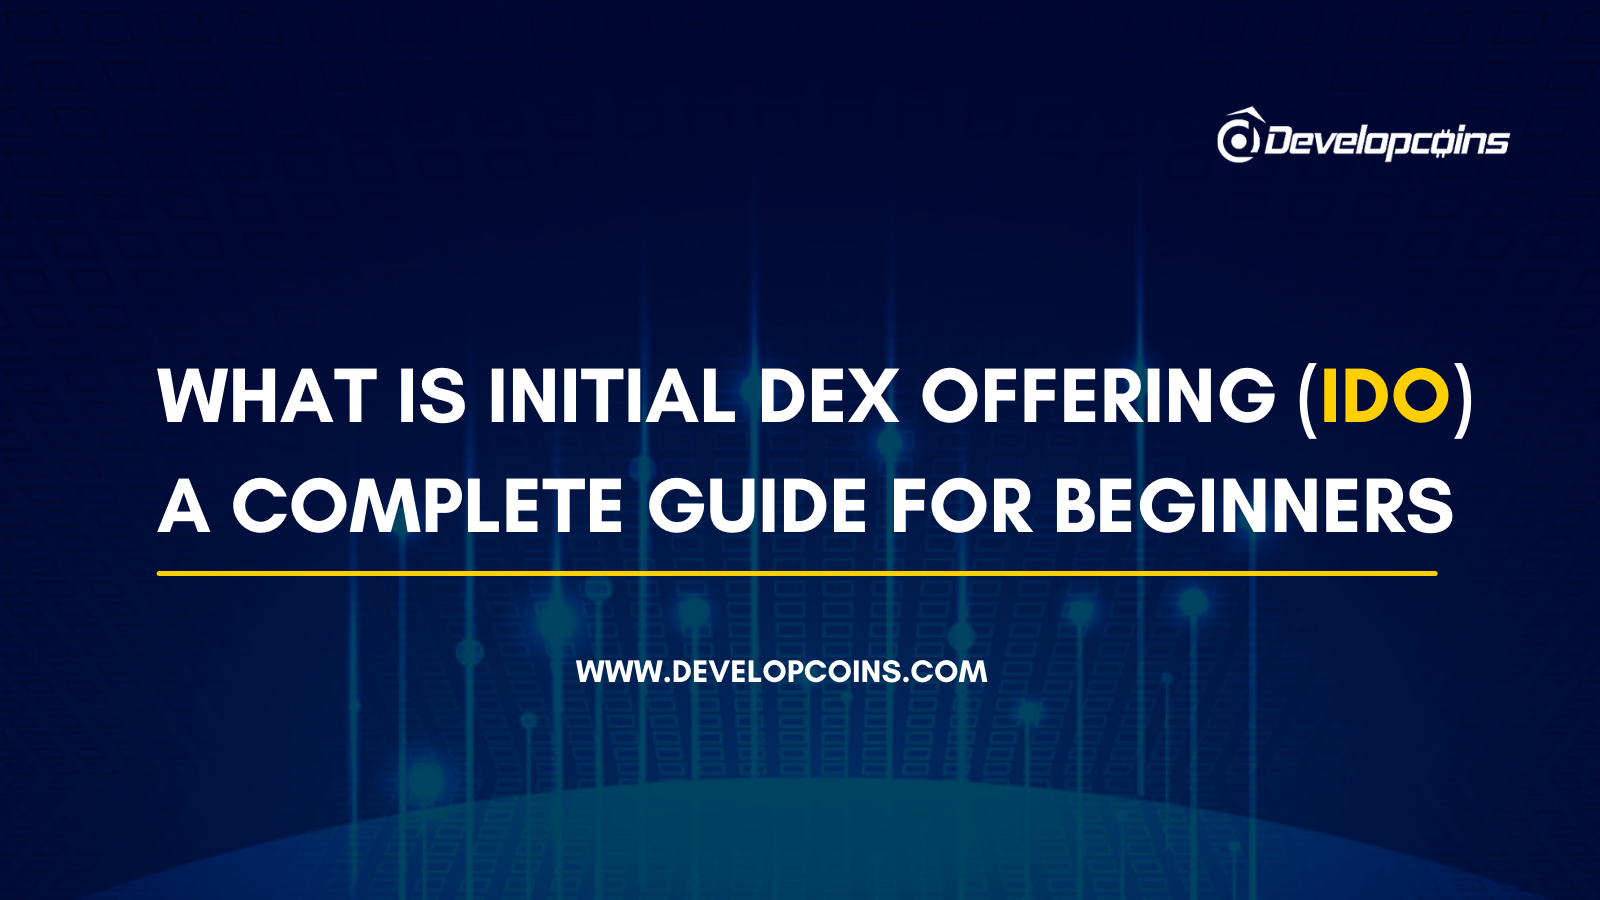 What is Initial DEX Offering (IDO)? A Complete Guide For Beginners